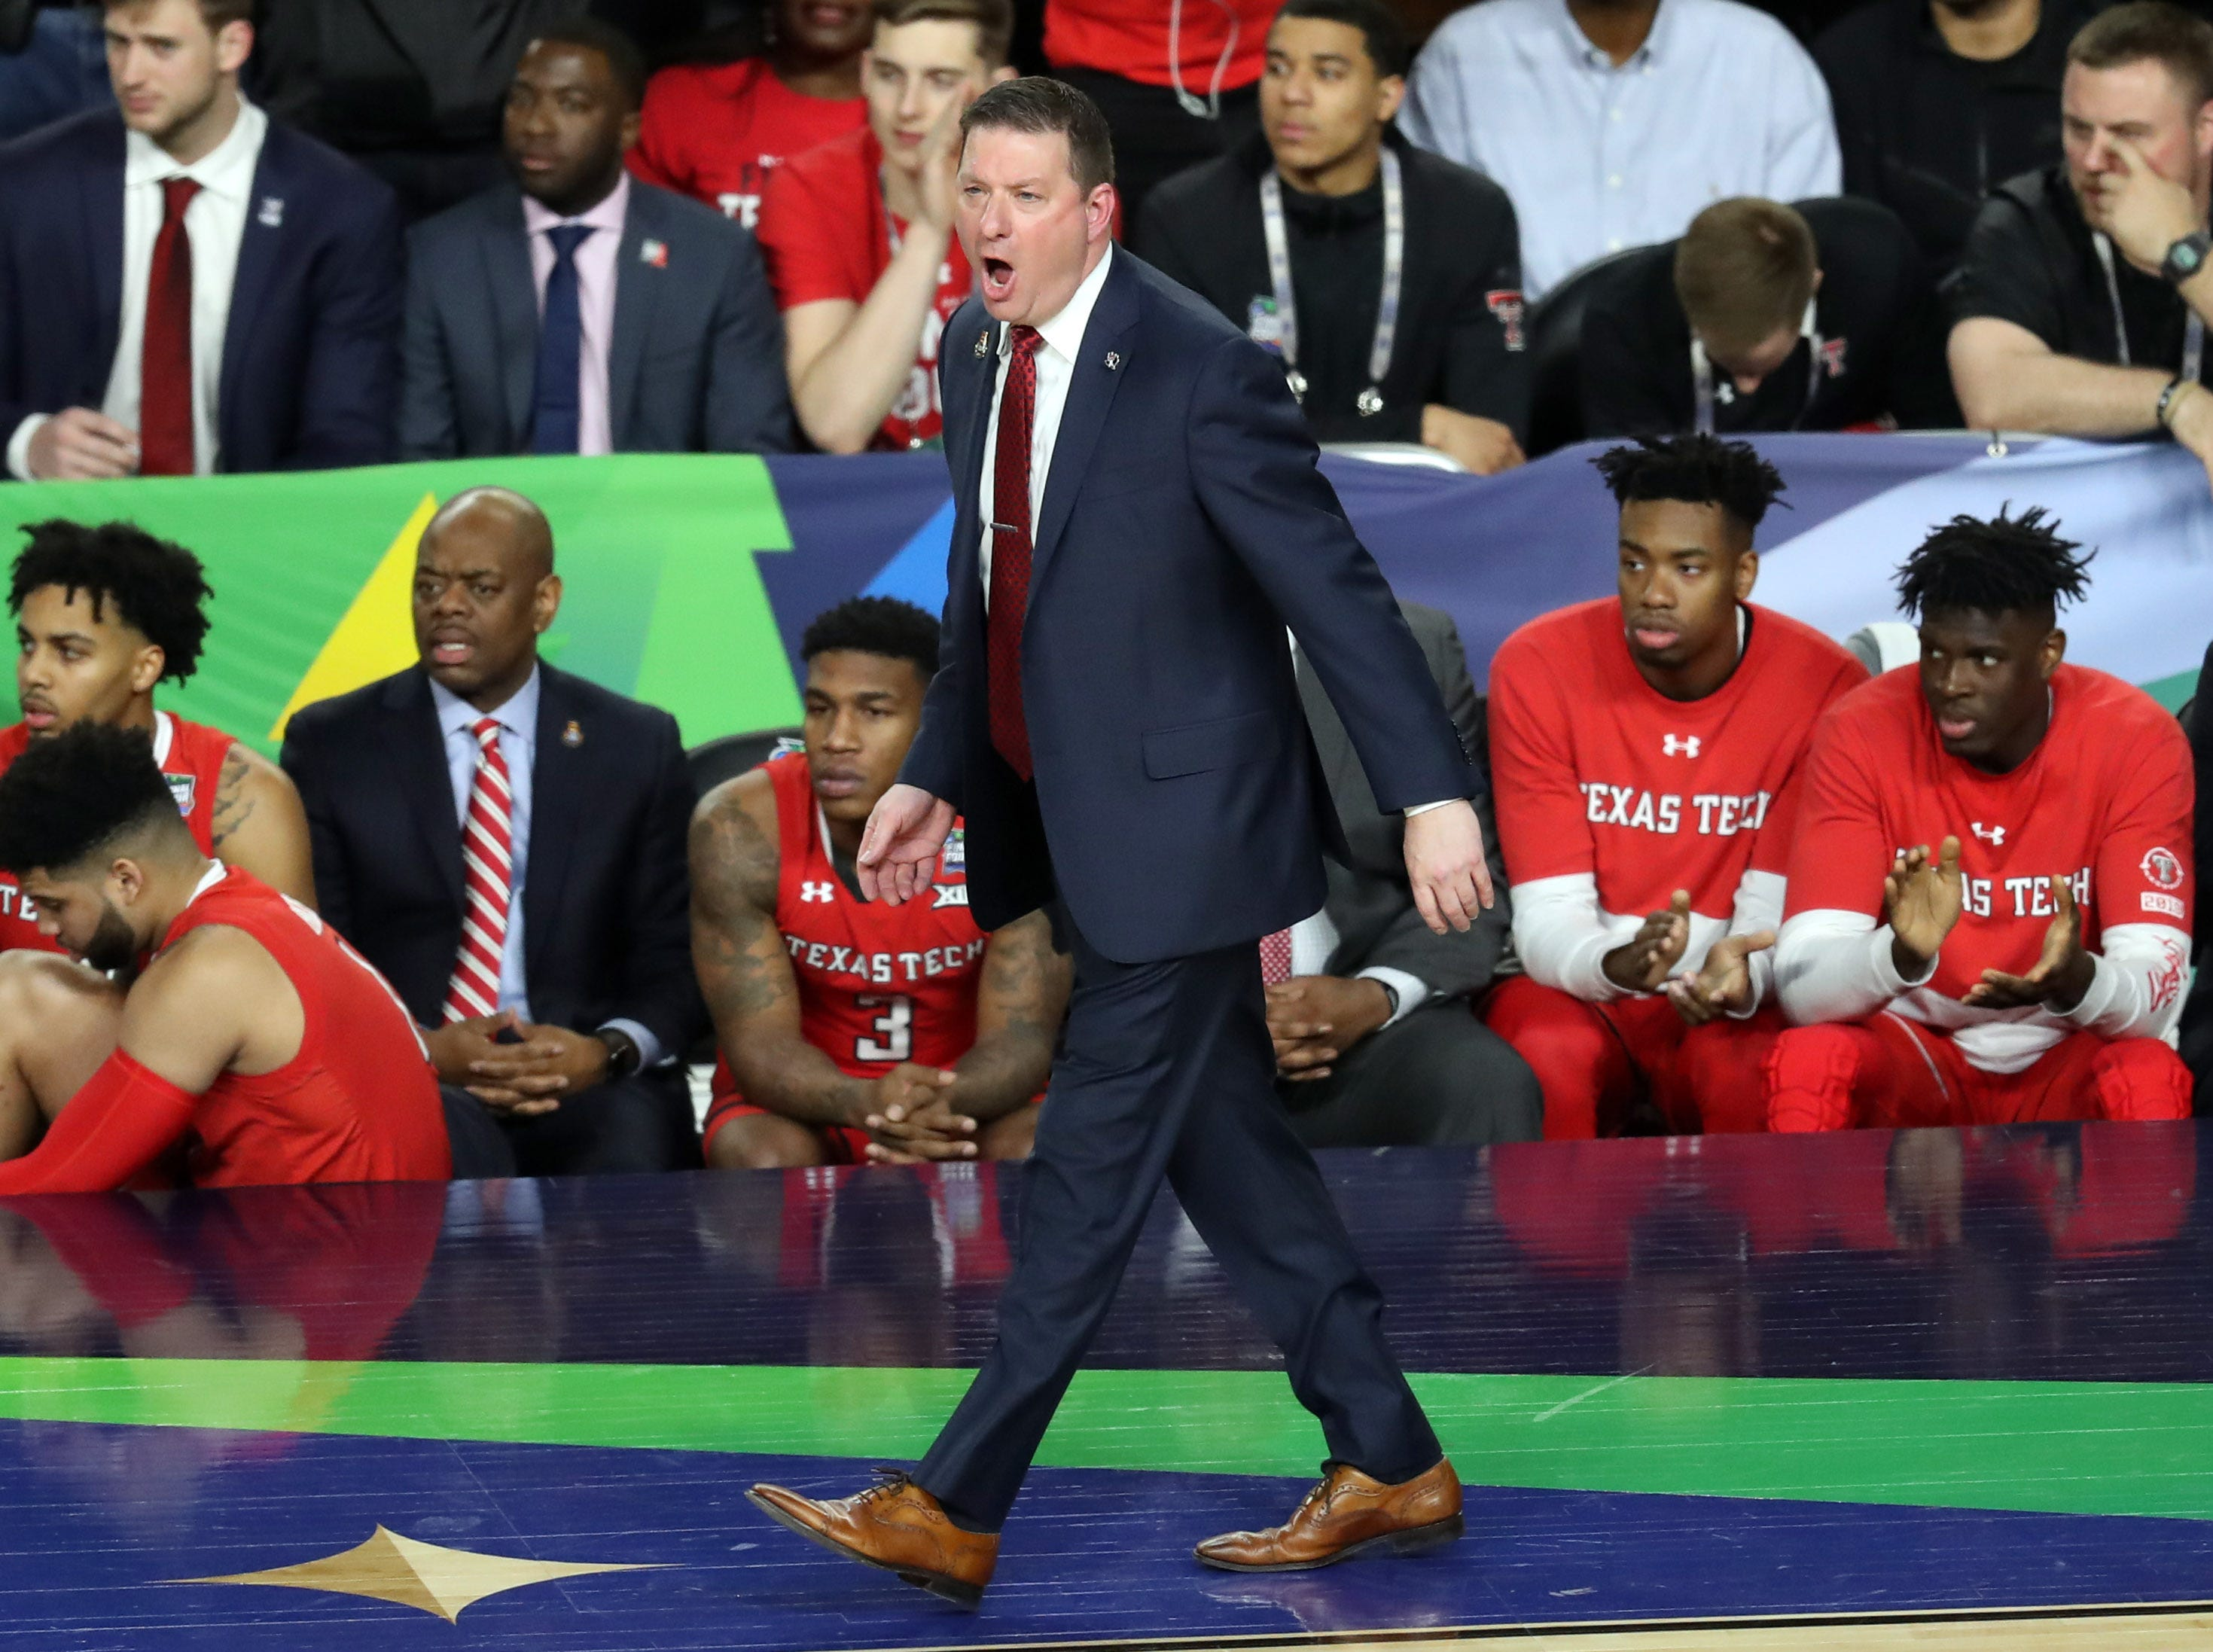 Apr 8, 2019; Minneapolis, MN, USA; Texas Tech Red Raiders head coach Chris Beard  during the first half against the Virginia Cavaliers in the championship game of the 2019 men's Final Four at US Bank Stadium. Mandatory Credit: Brace Hemmelgarn-USA TODAY Sports